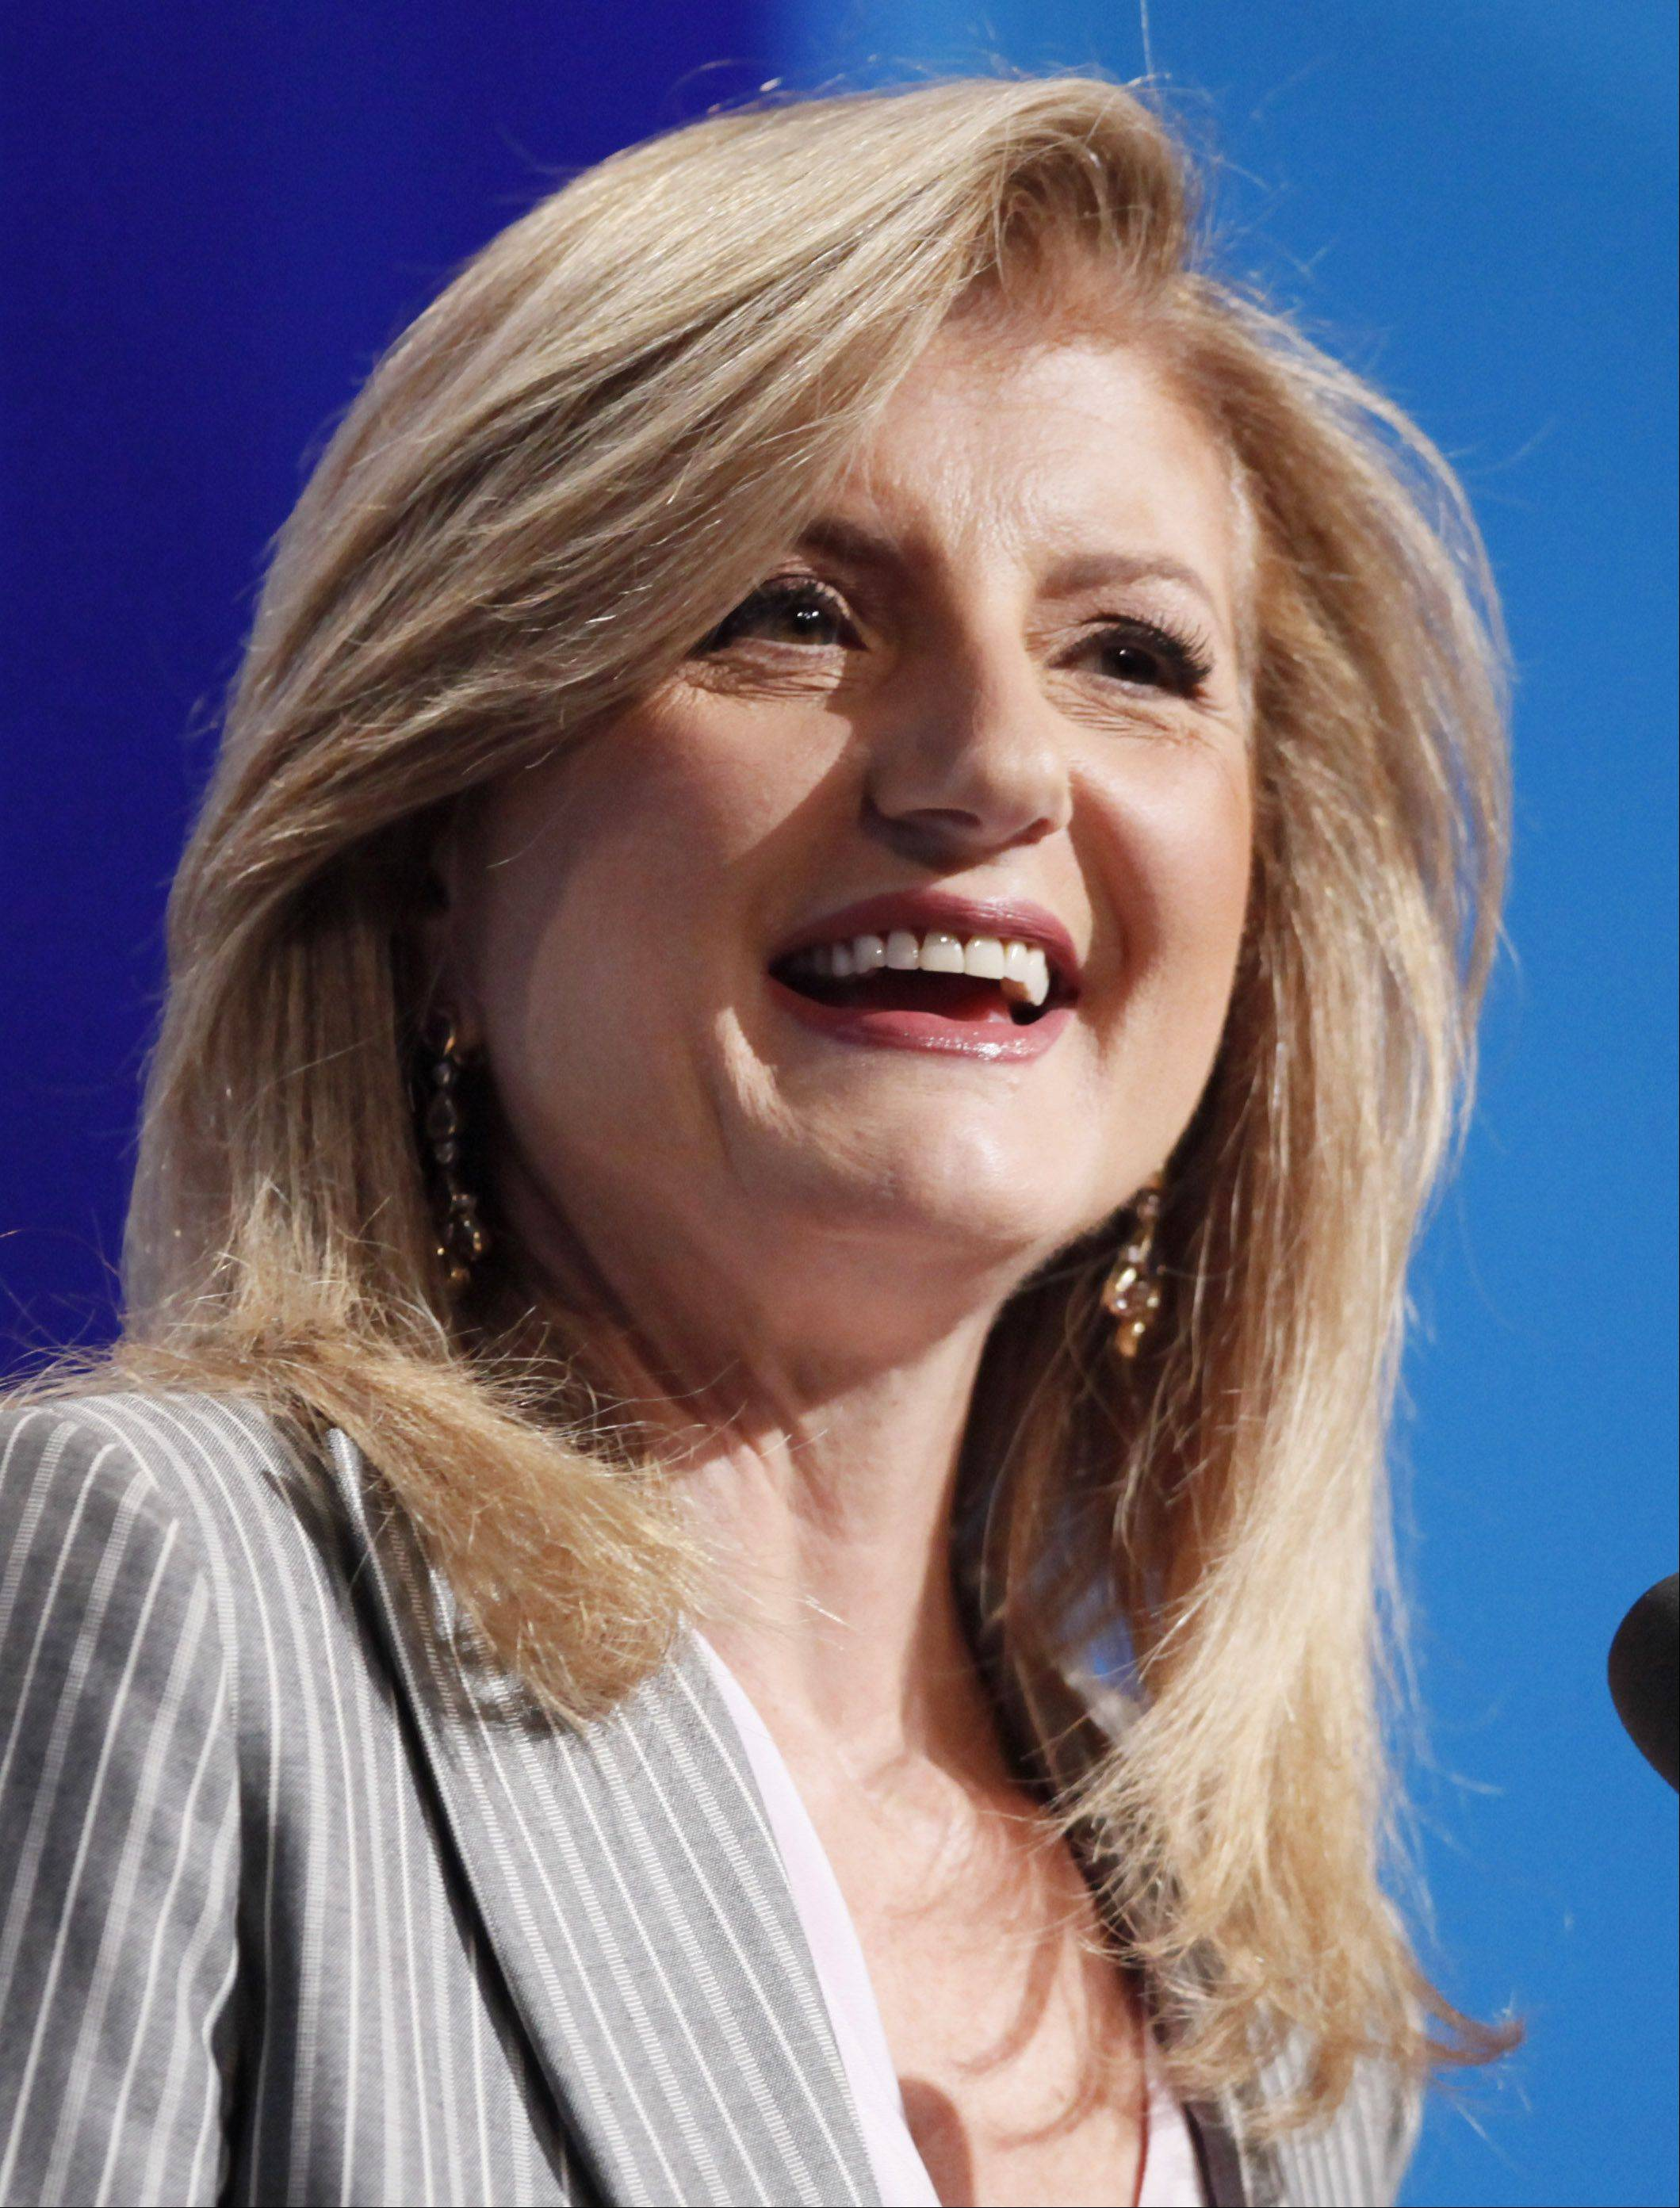 Arianna Huffington, Chair, president and editor-in-chief of the Huffington Post Media Group